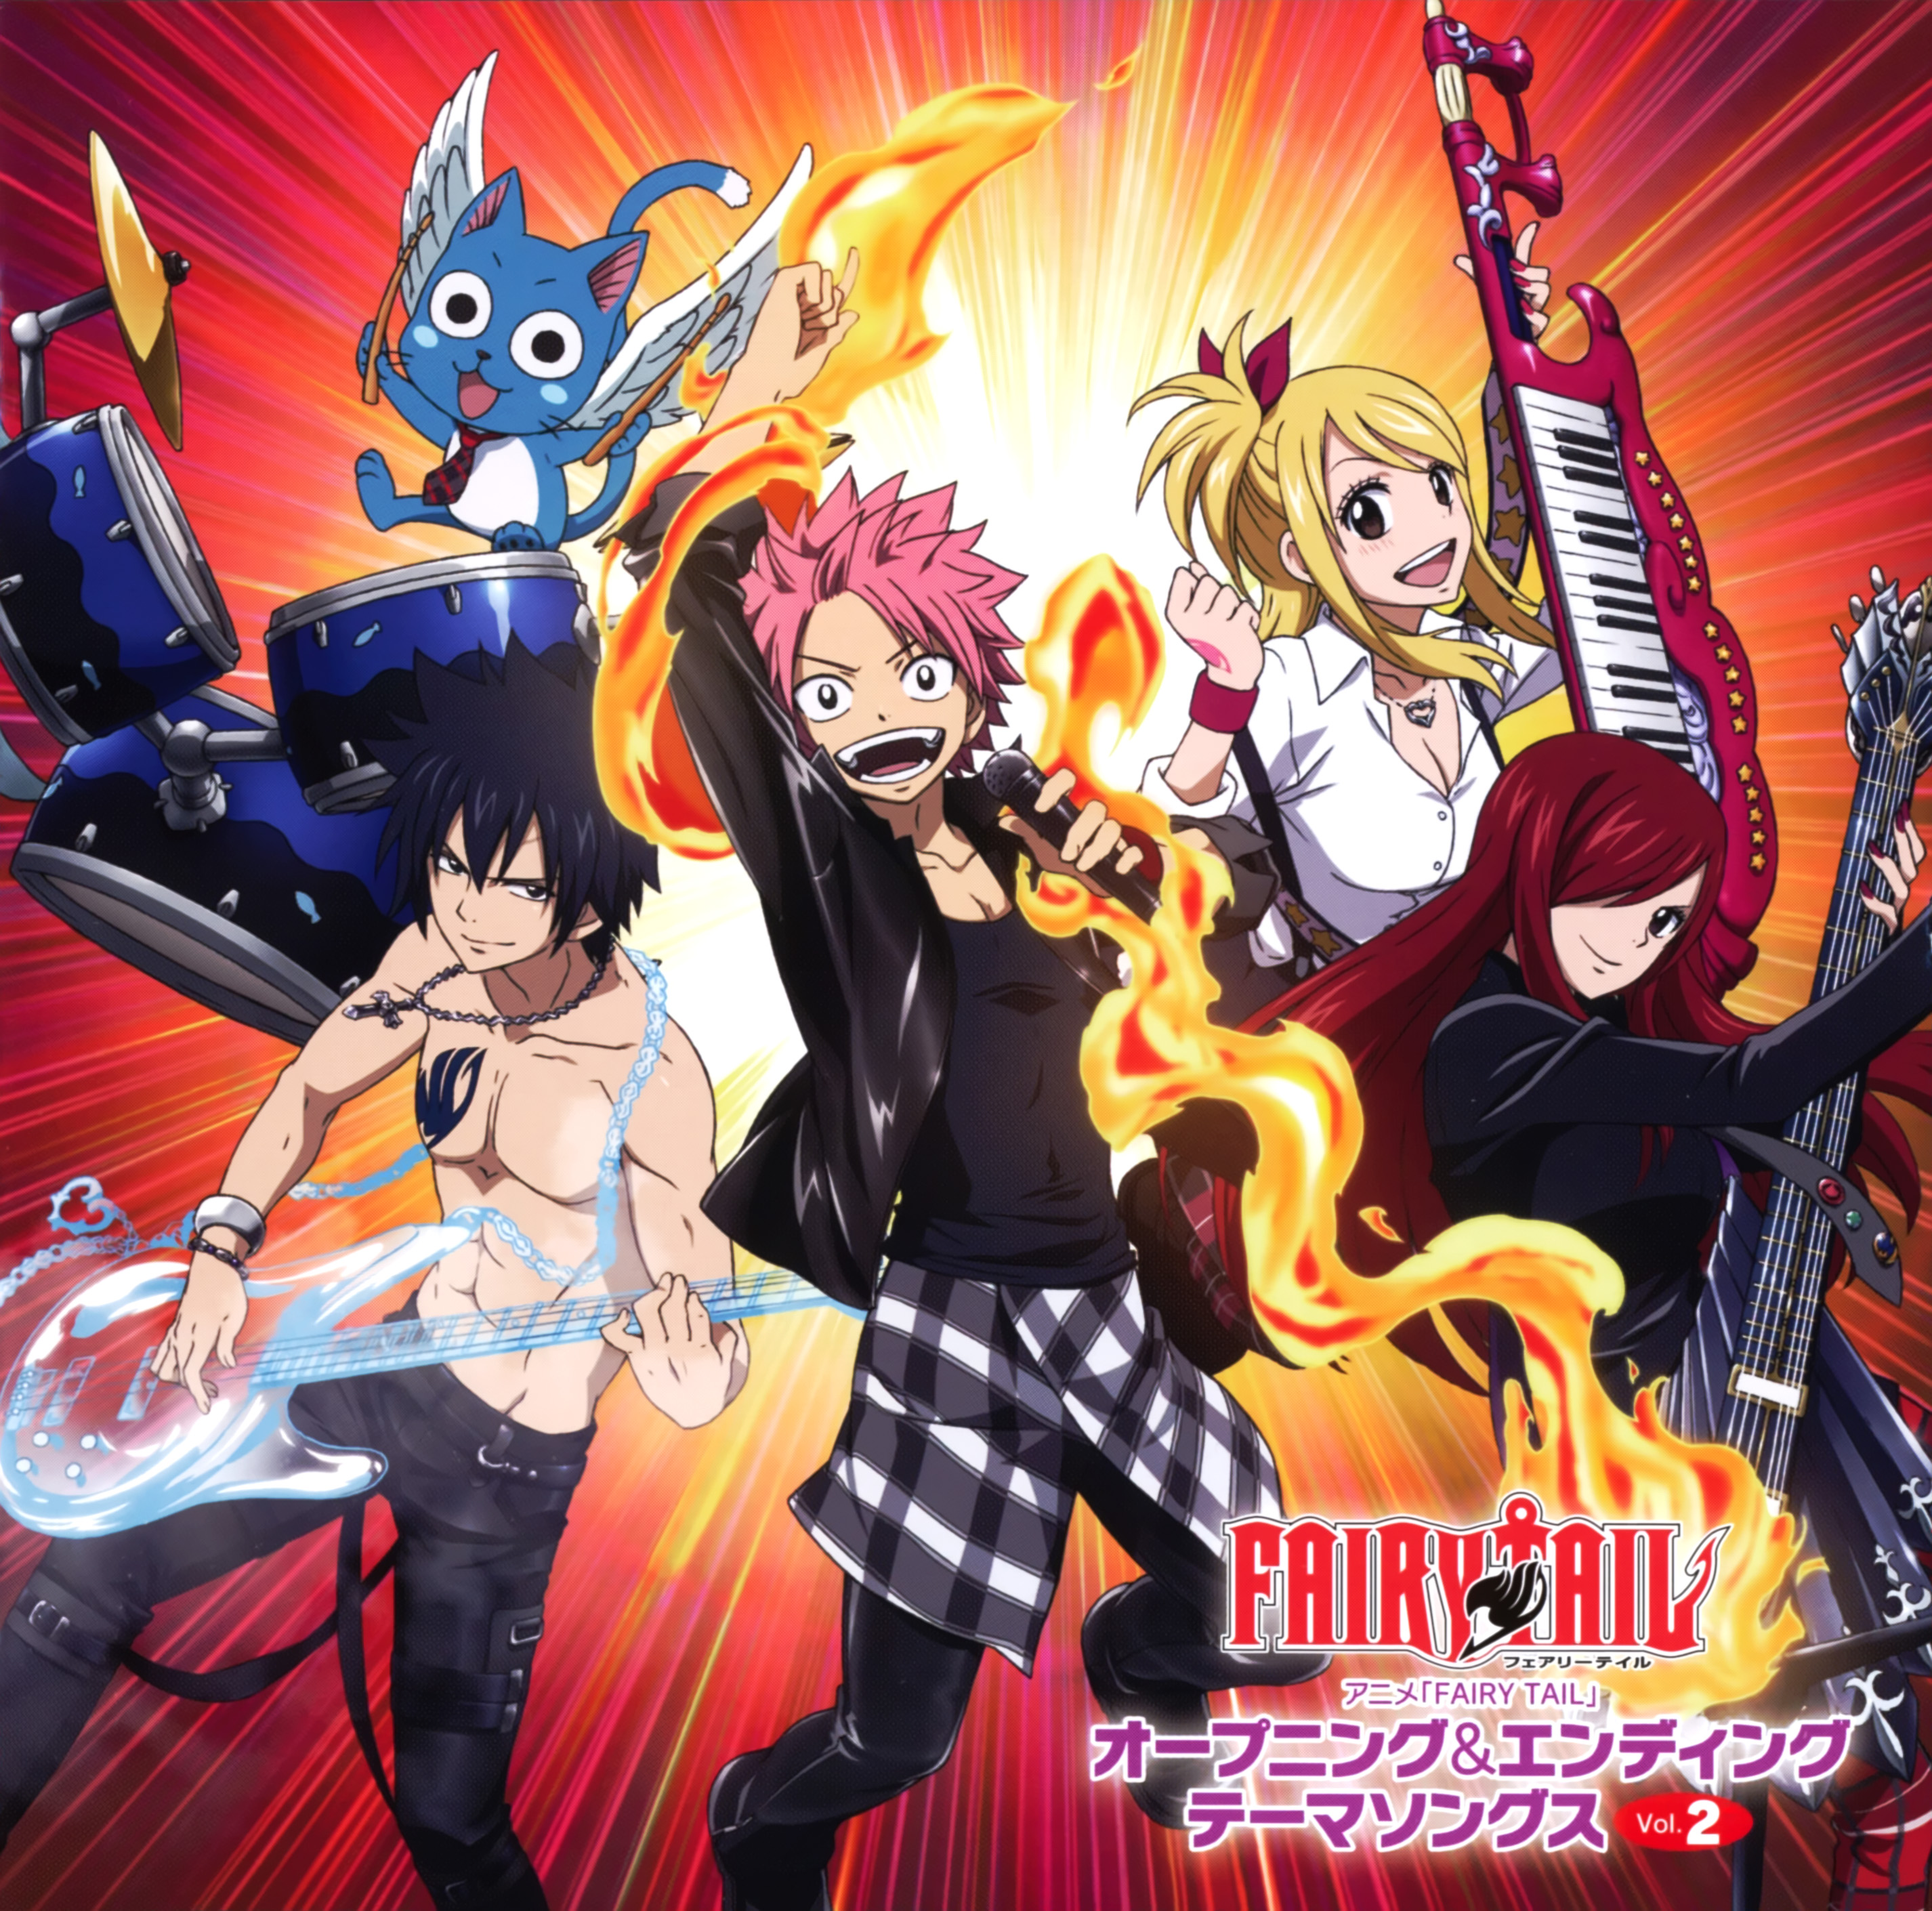 fairytail_fairytail season 2